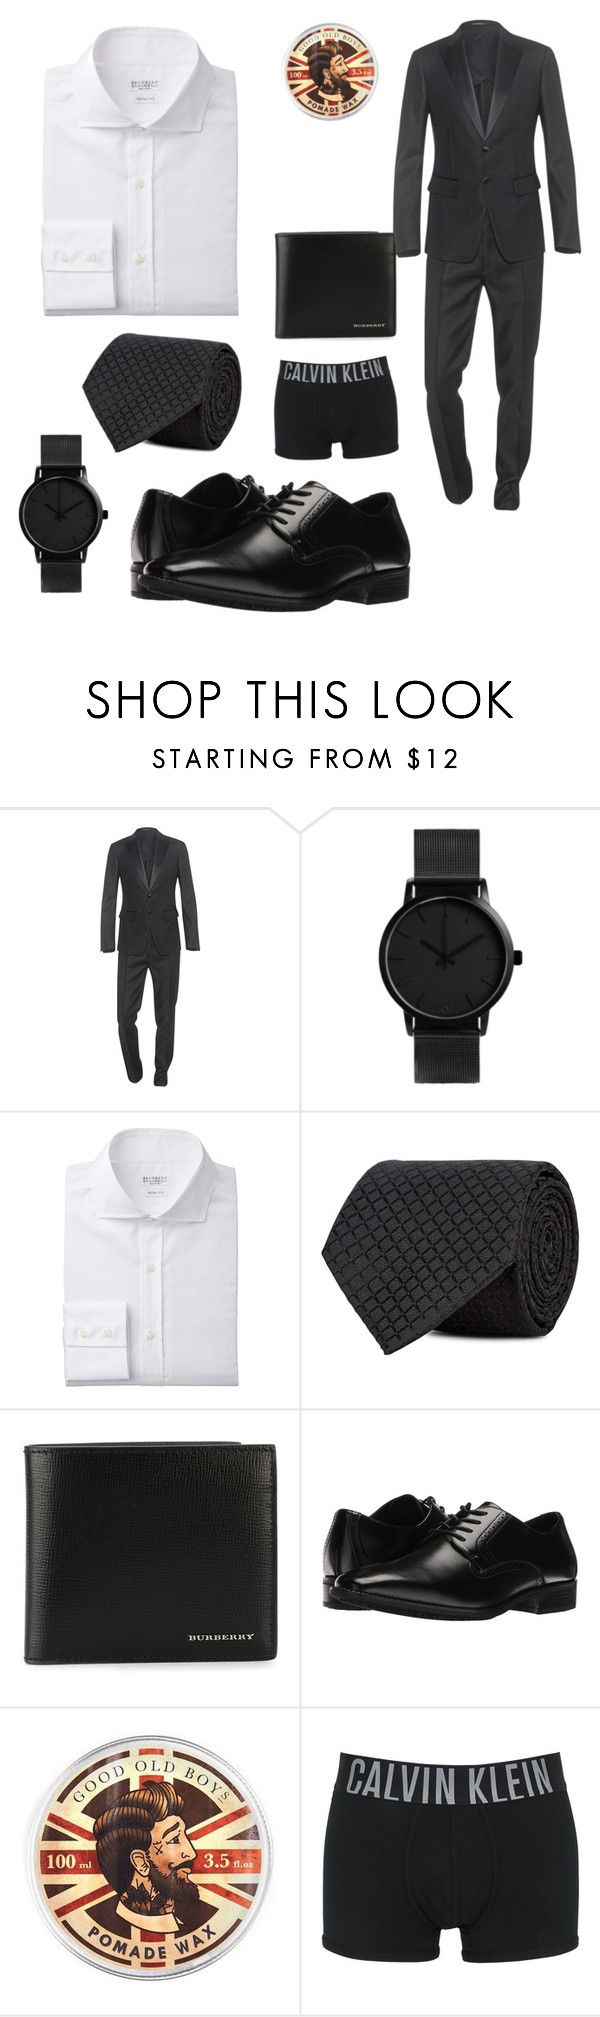 """""""Men's Valentine's Day"""" by alliesween ❤ liked on Polyvore featuring Dsquared2, Armani Collezioni, Burberry, Stacy Adams, Topman, Calvin Klein Underwear, men's fashion and menswear"""